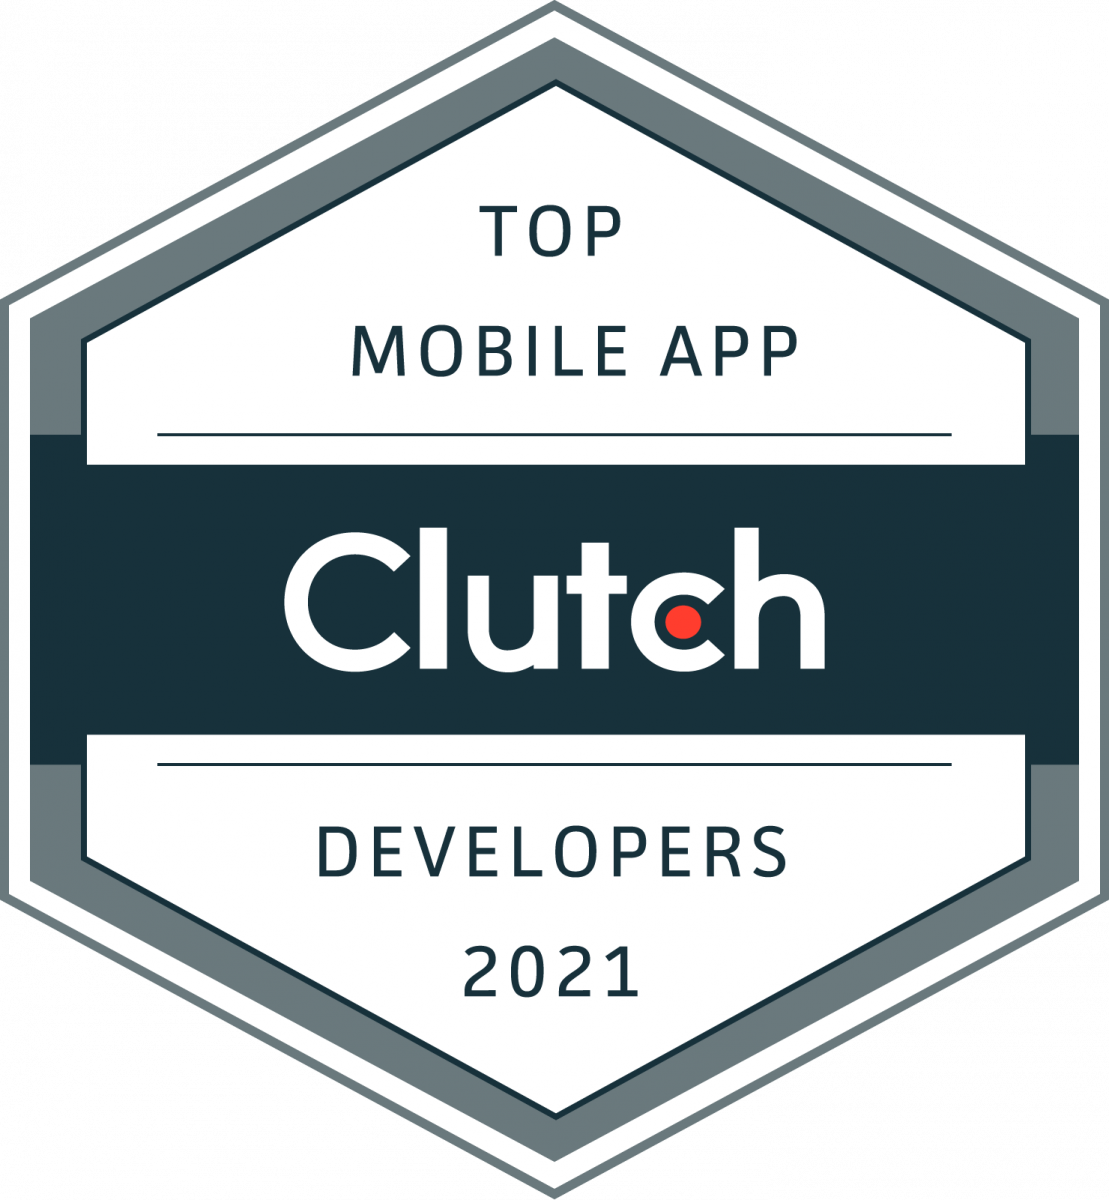 Top Mobile App Developers 2021